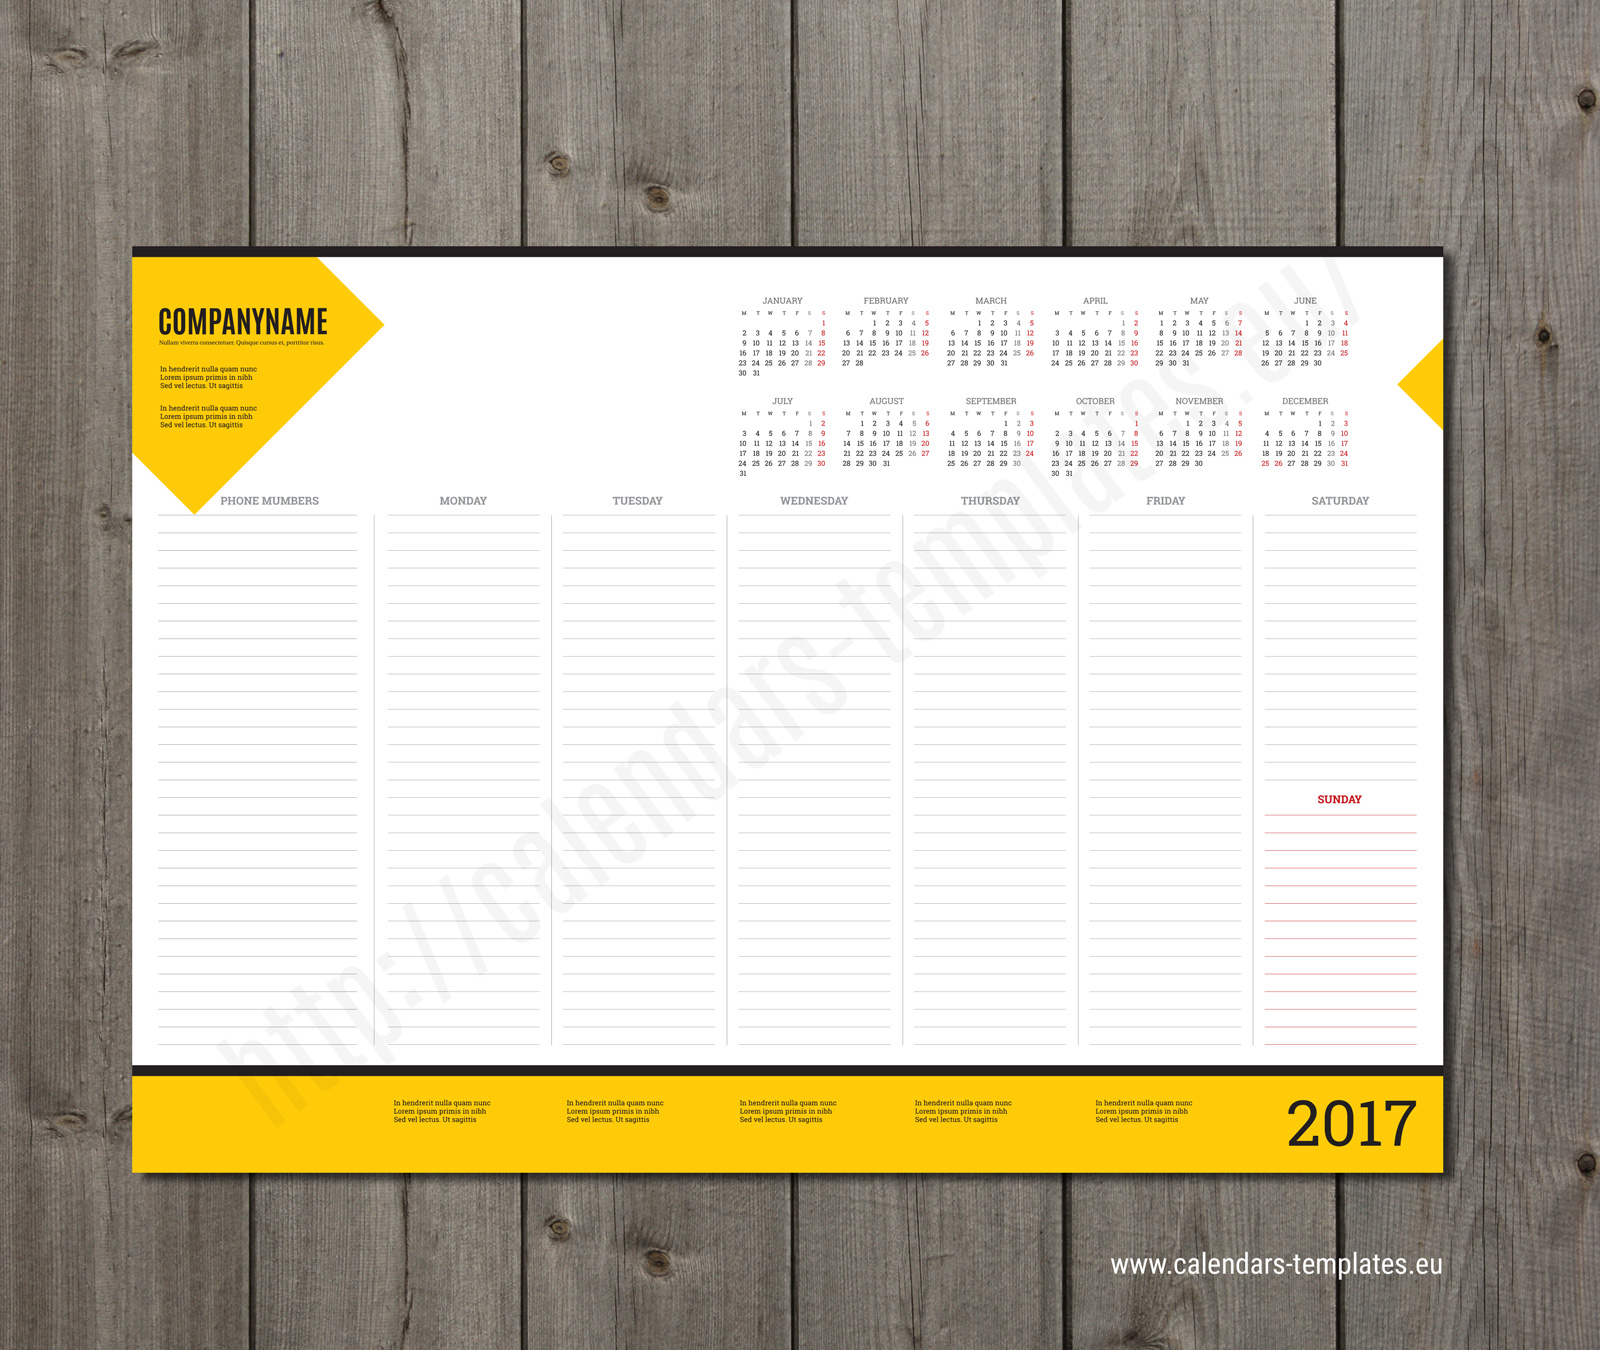 Weekly Calendar Pad : Weekly desk pad planner template with yearly calendar